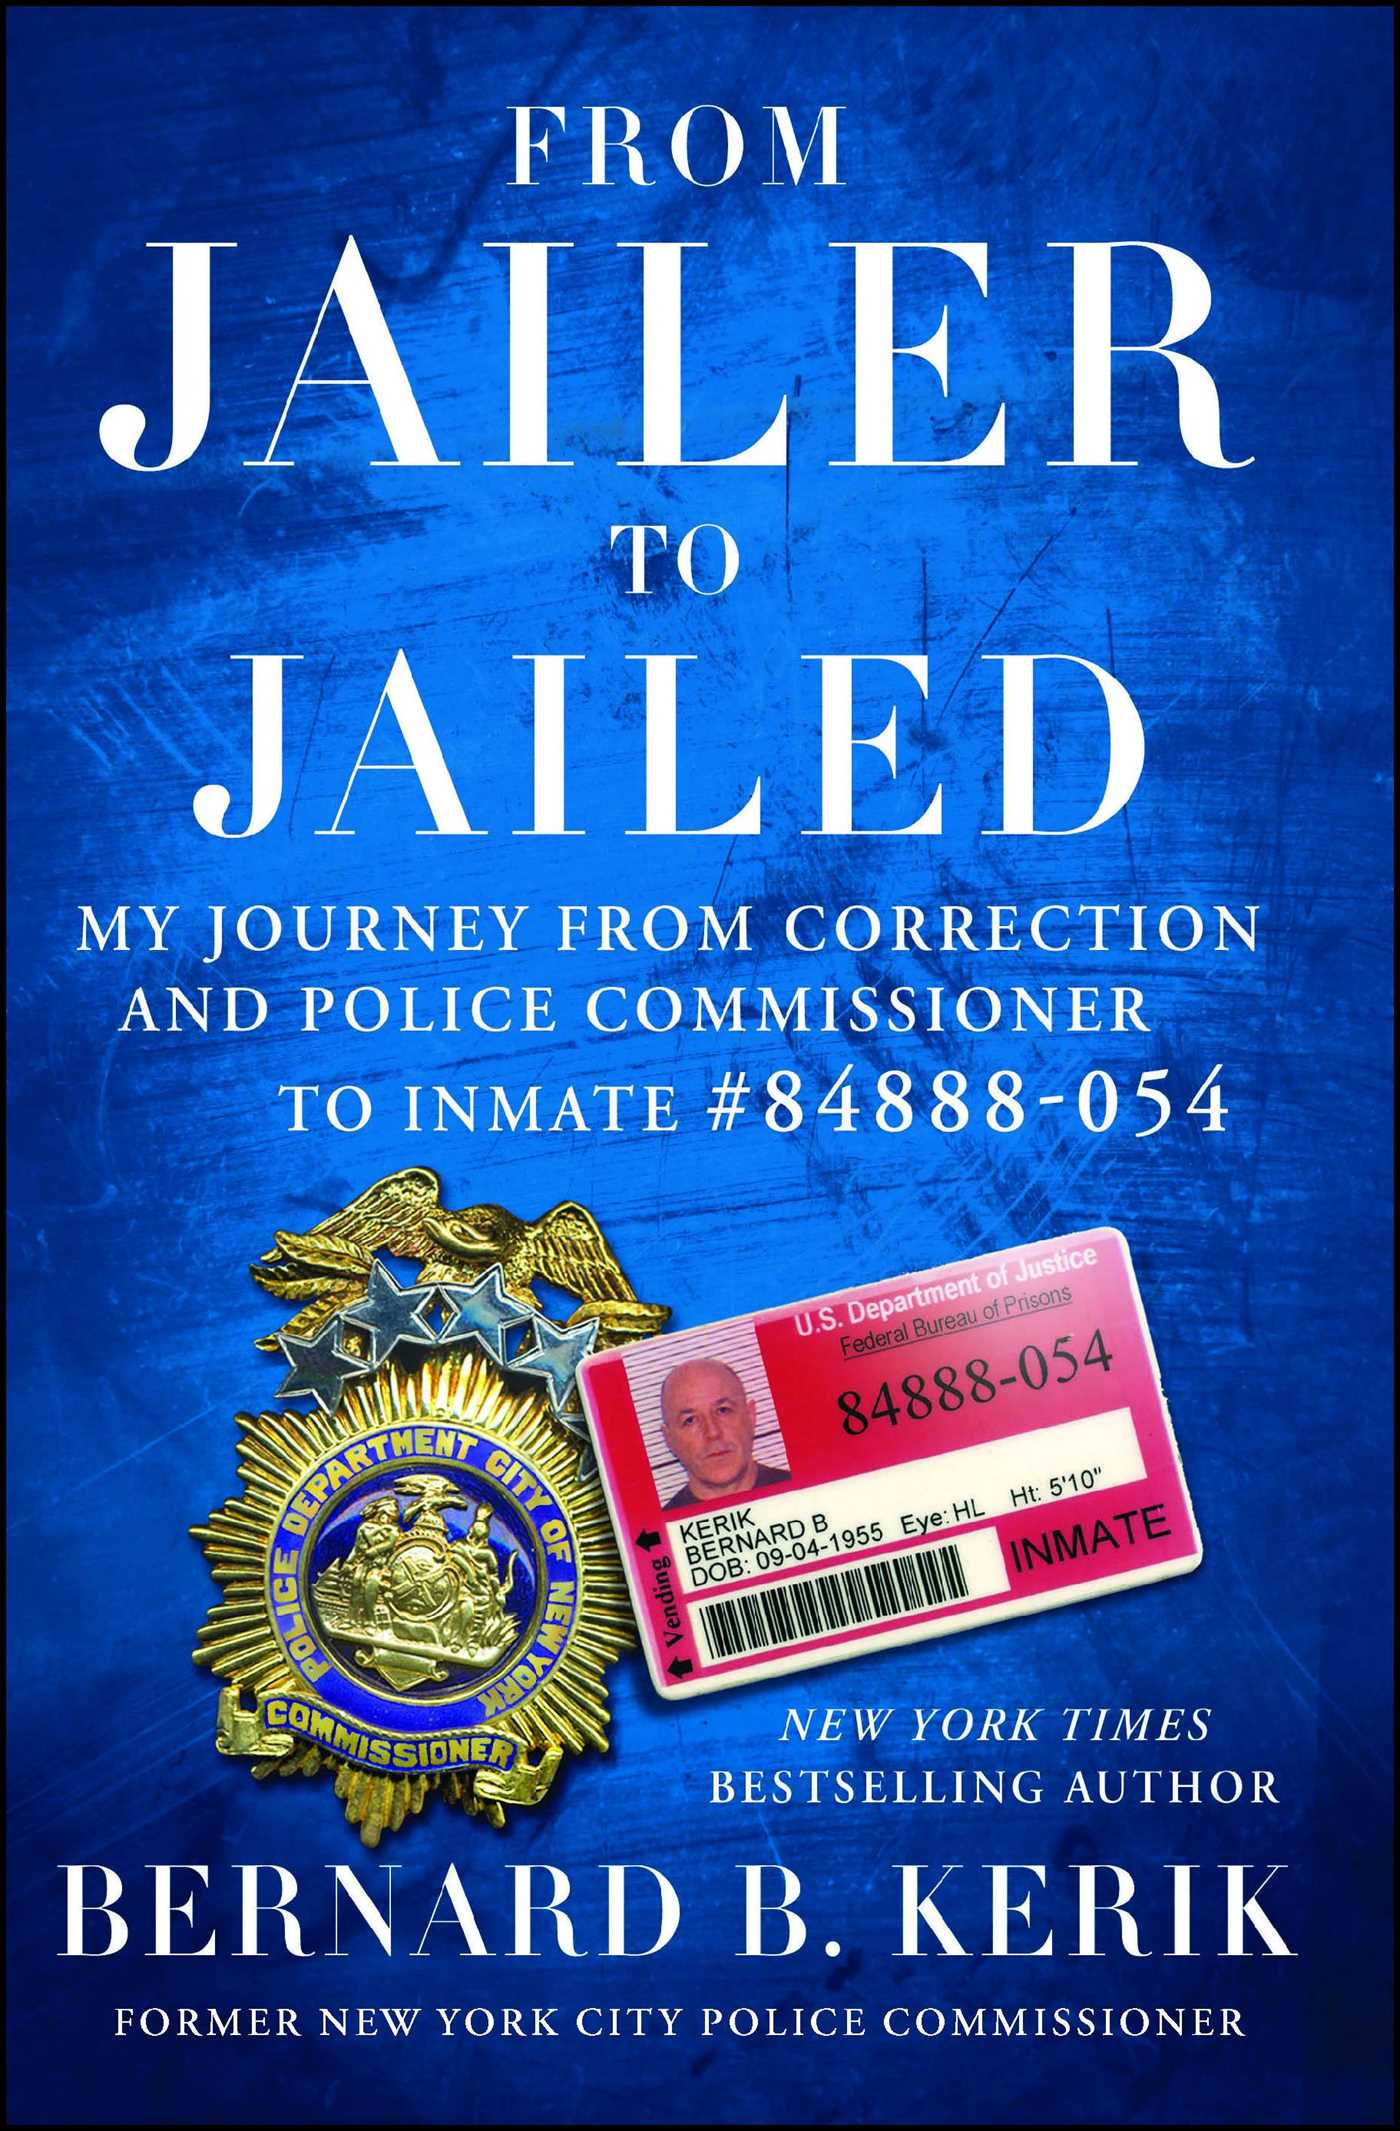 From jailer to jailed 9781476783710 hr